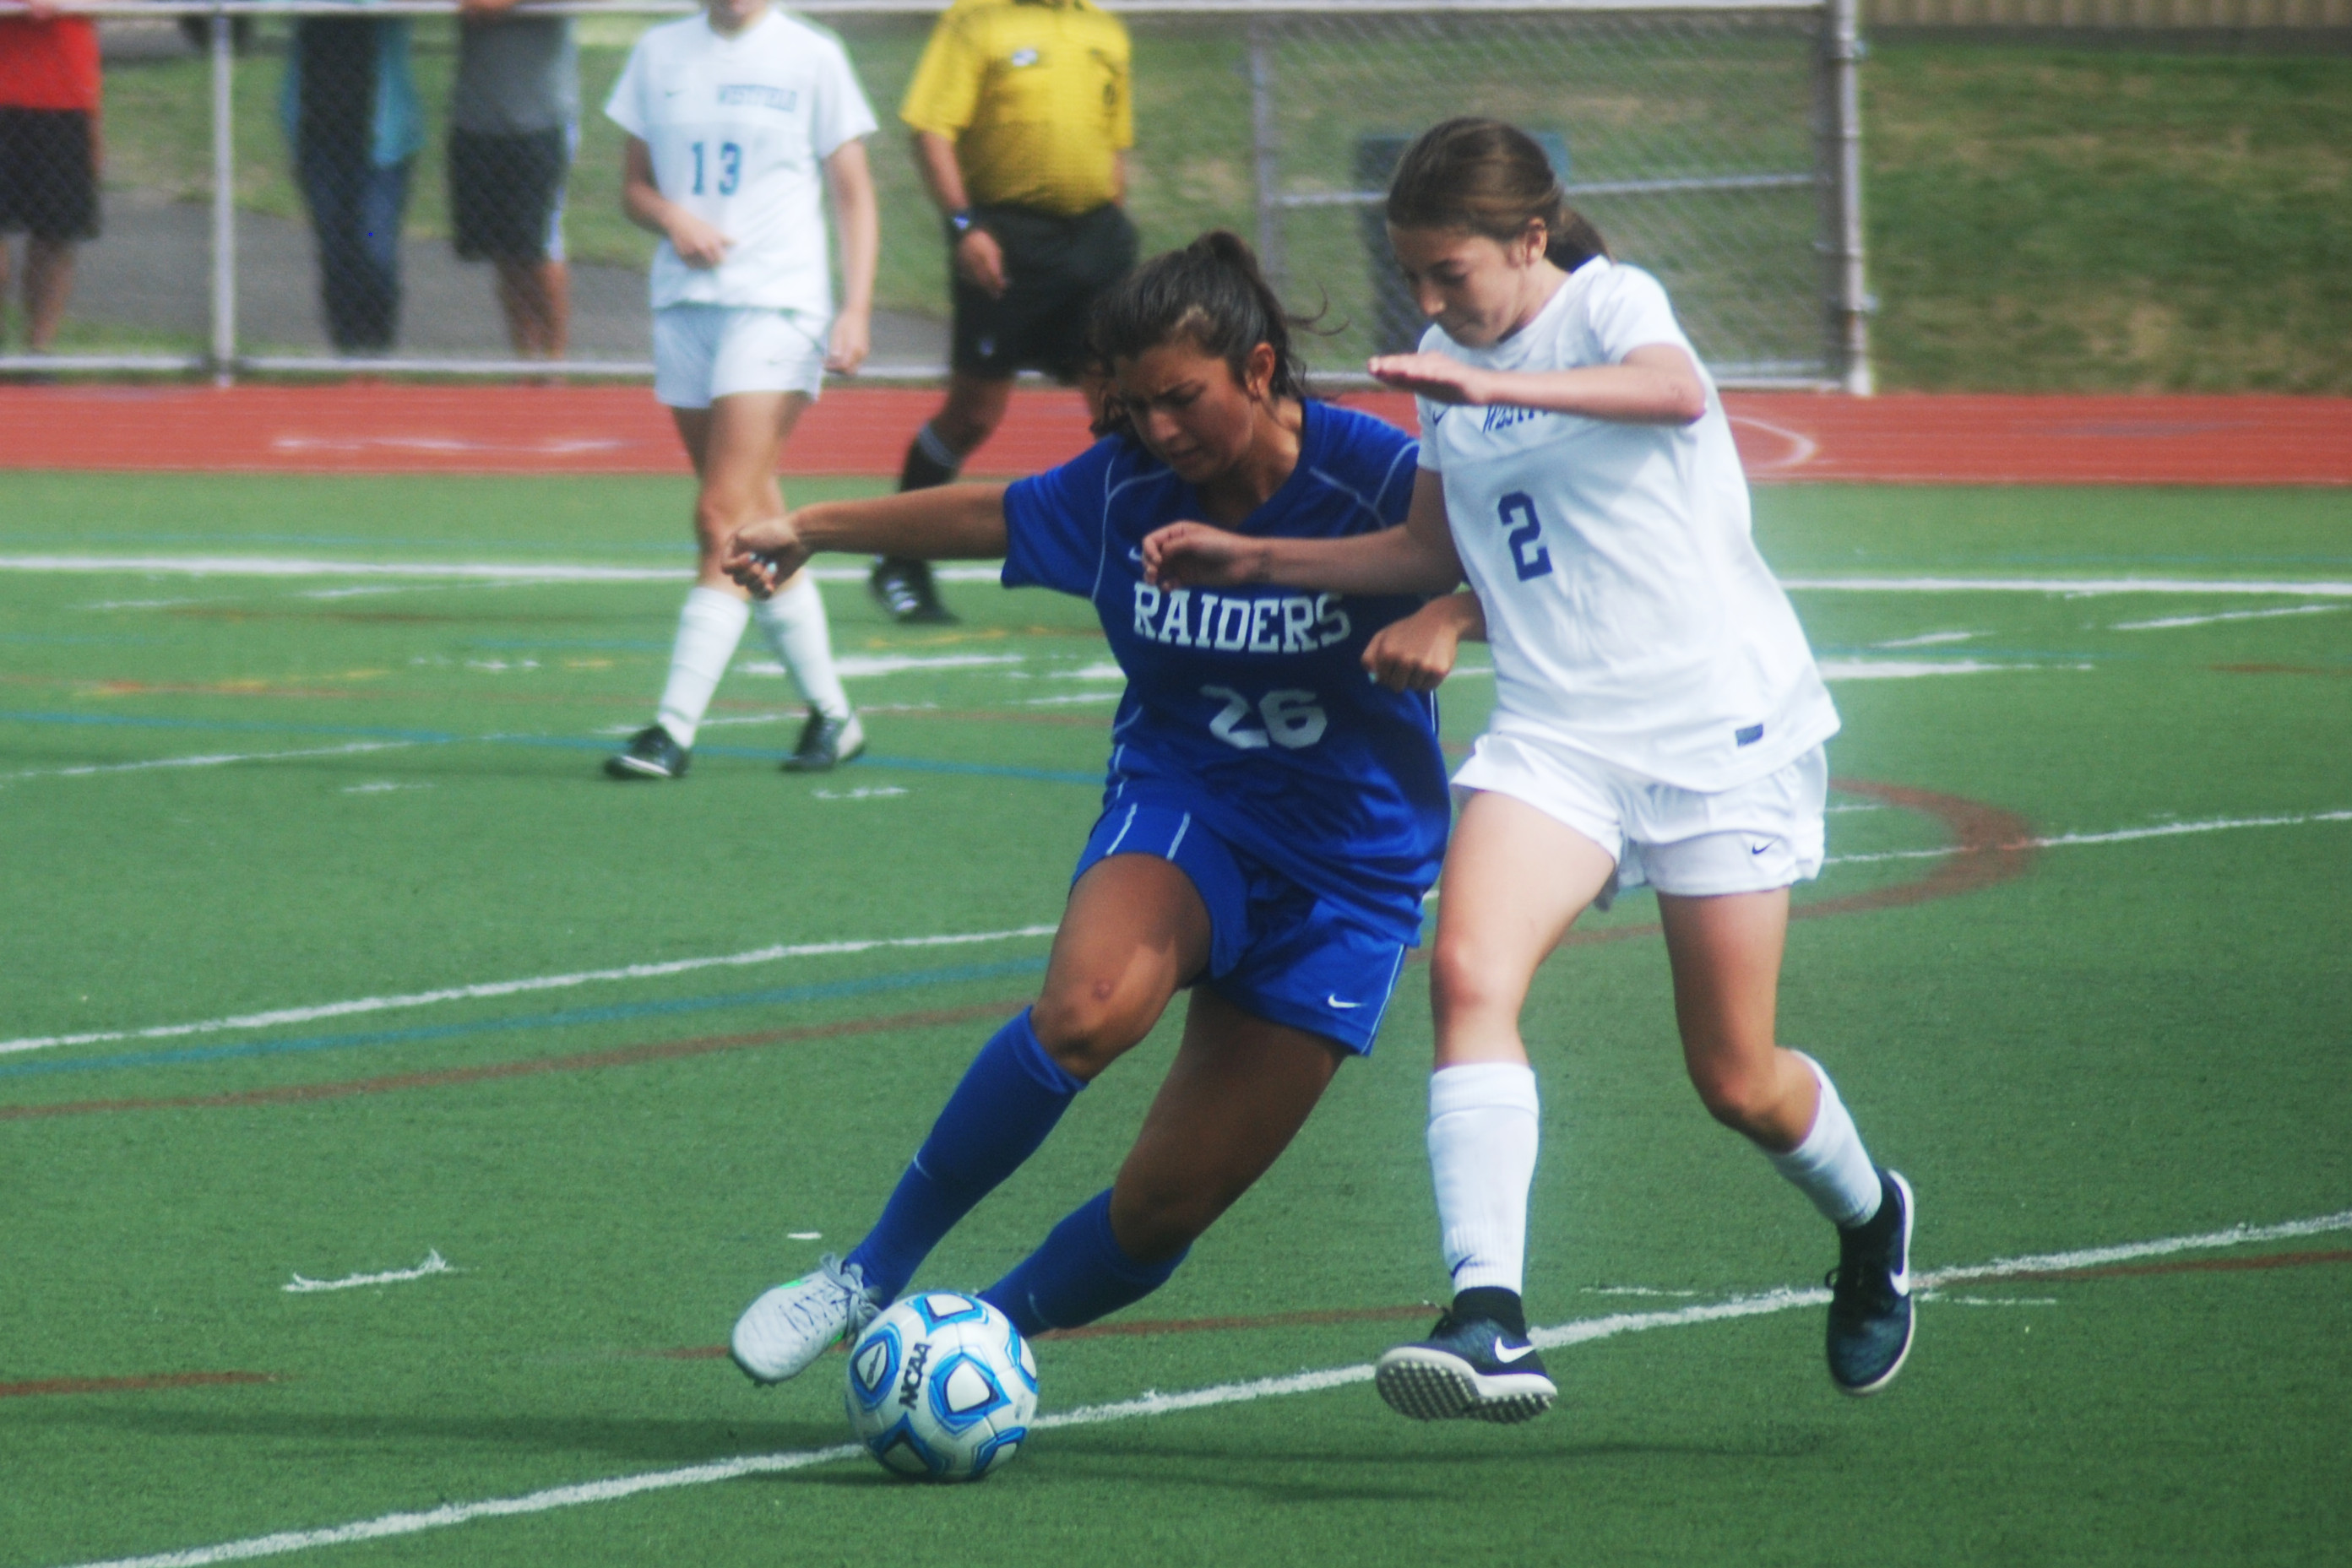 df3936b41218d34f8fdb_18a16d2a8f96de8d493d_Sophie_Brause_of_Scotch_Plains-Fanwood_and_Carly_Bechtloff_of_Westfield_fight_for_the_ball.__katherine_gillen.JPG